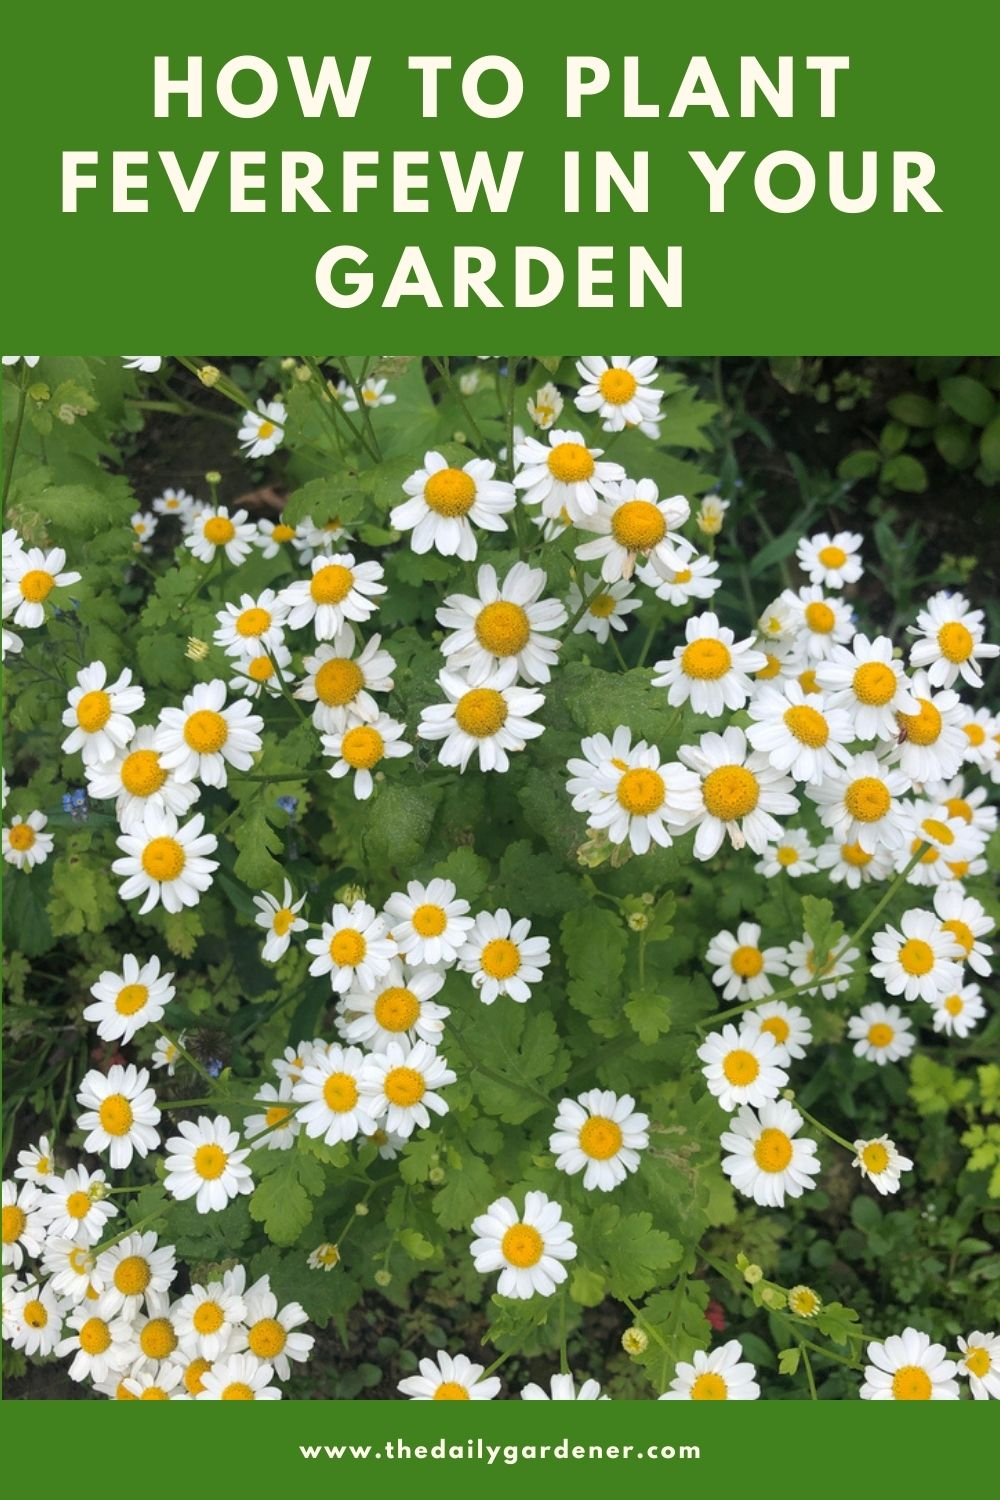 How to Plant Feverfew in Your Garden (Tricks to Care!) 1